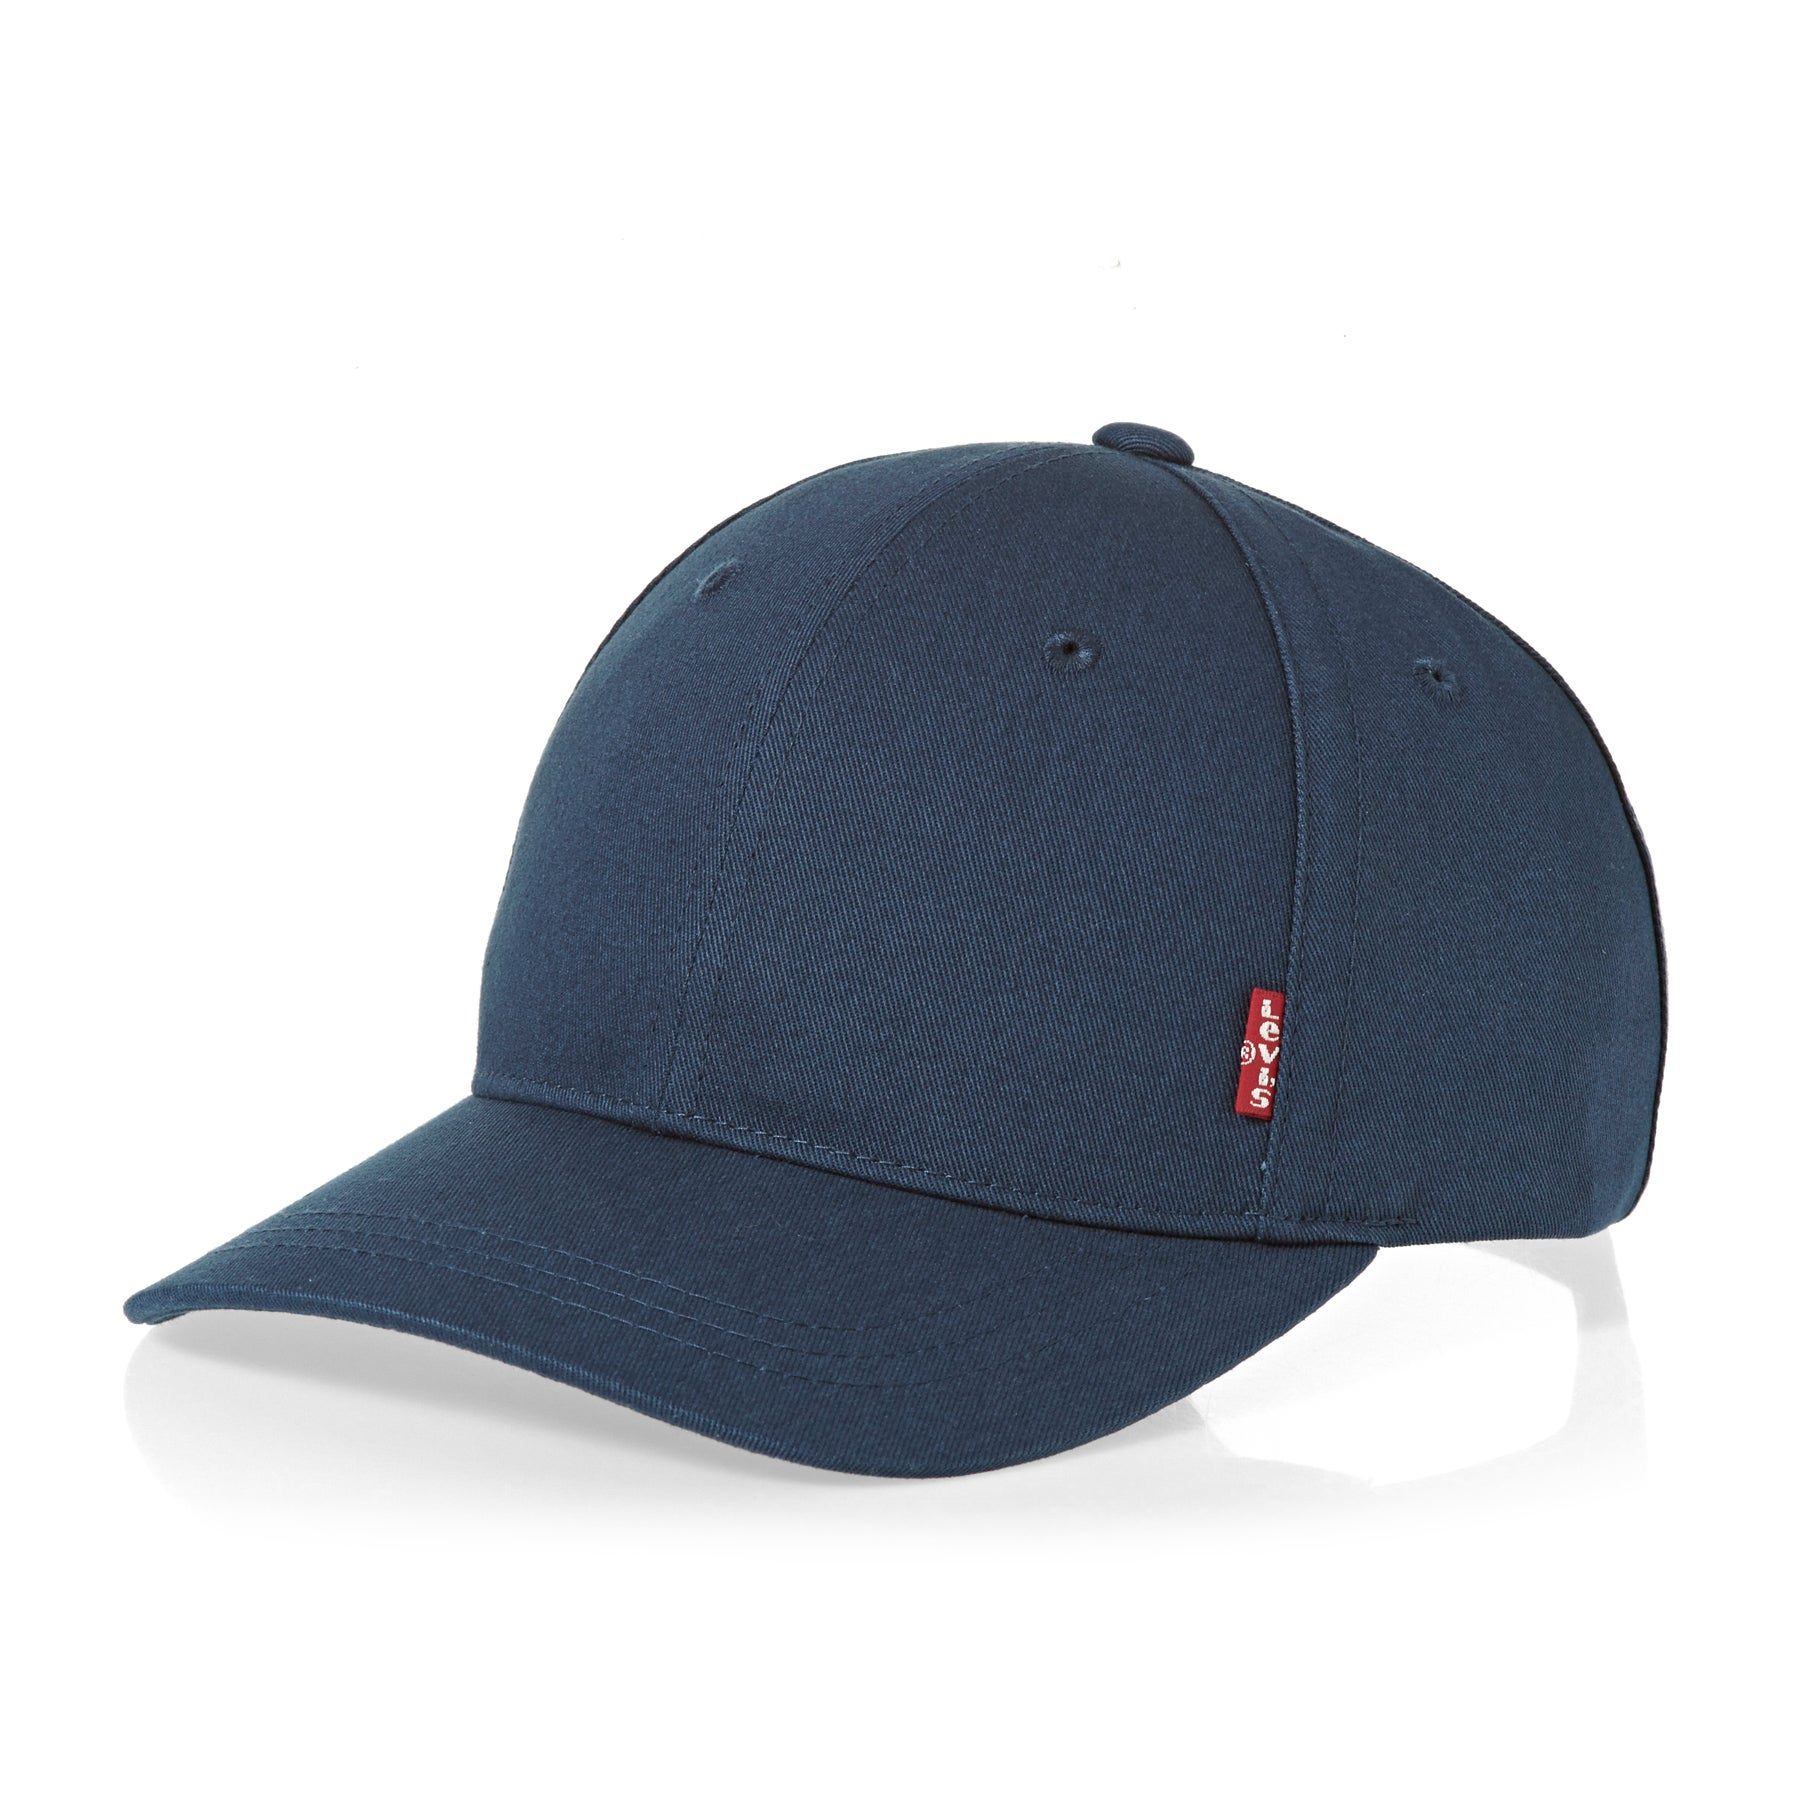 new concept 0a420 67ff9 ... mlb boston red sox reverse basic adjustable cap hat by fan favorite  e12ce 160c6  best mens hats free delivery options available at surfdome  7c644 fba38